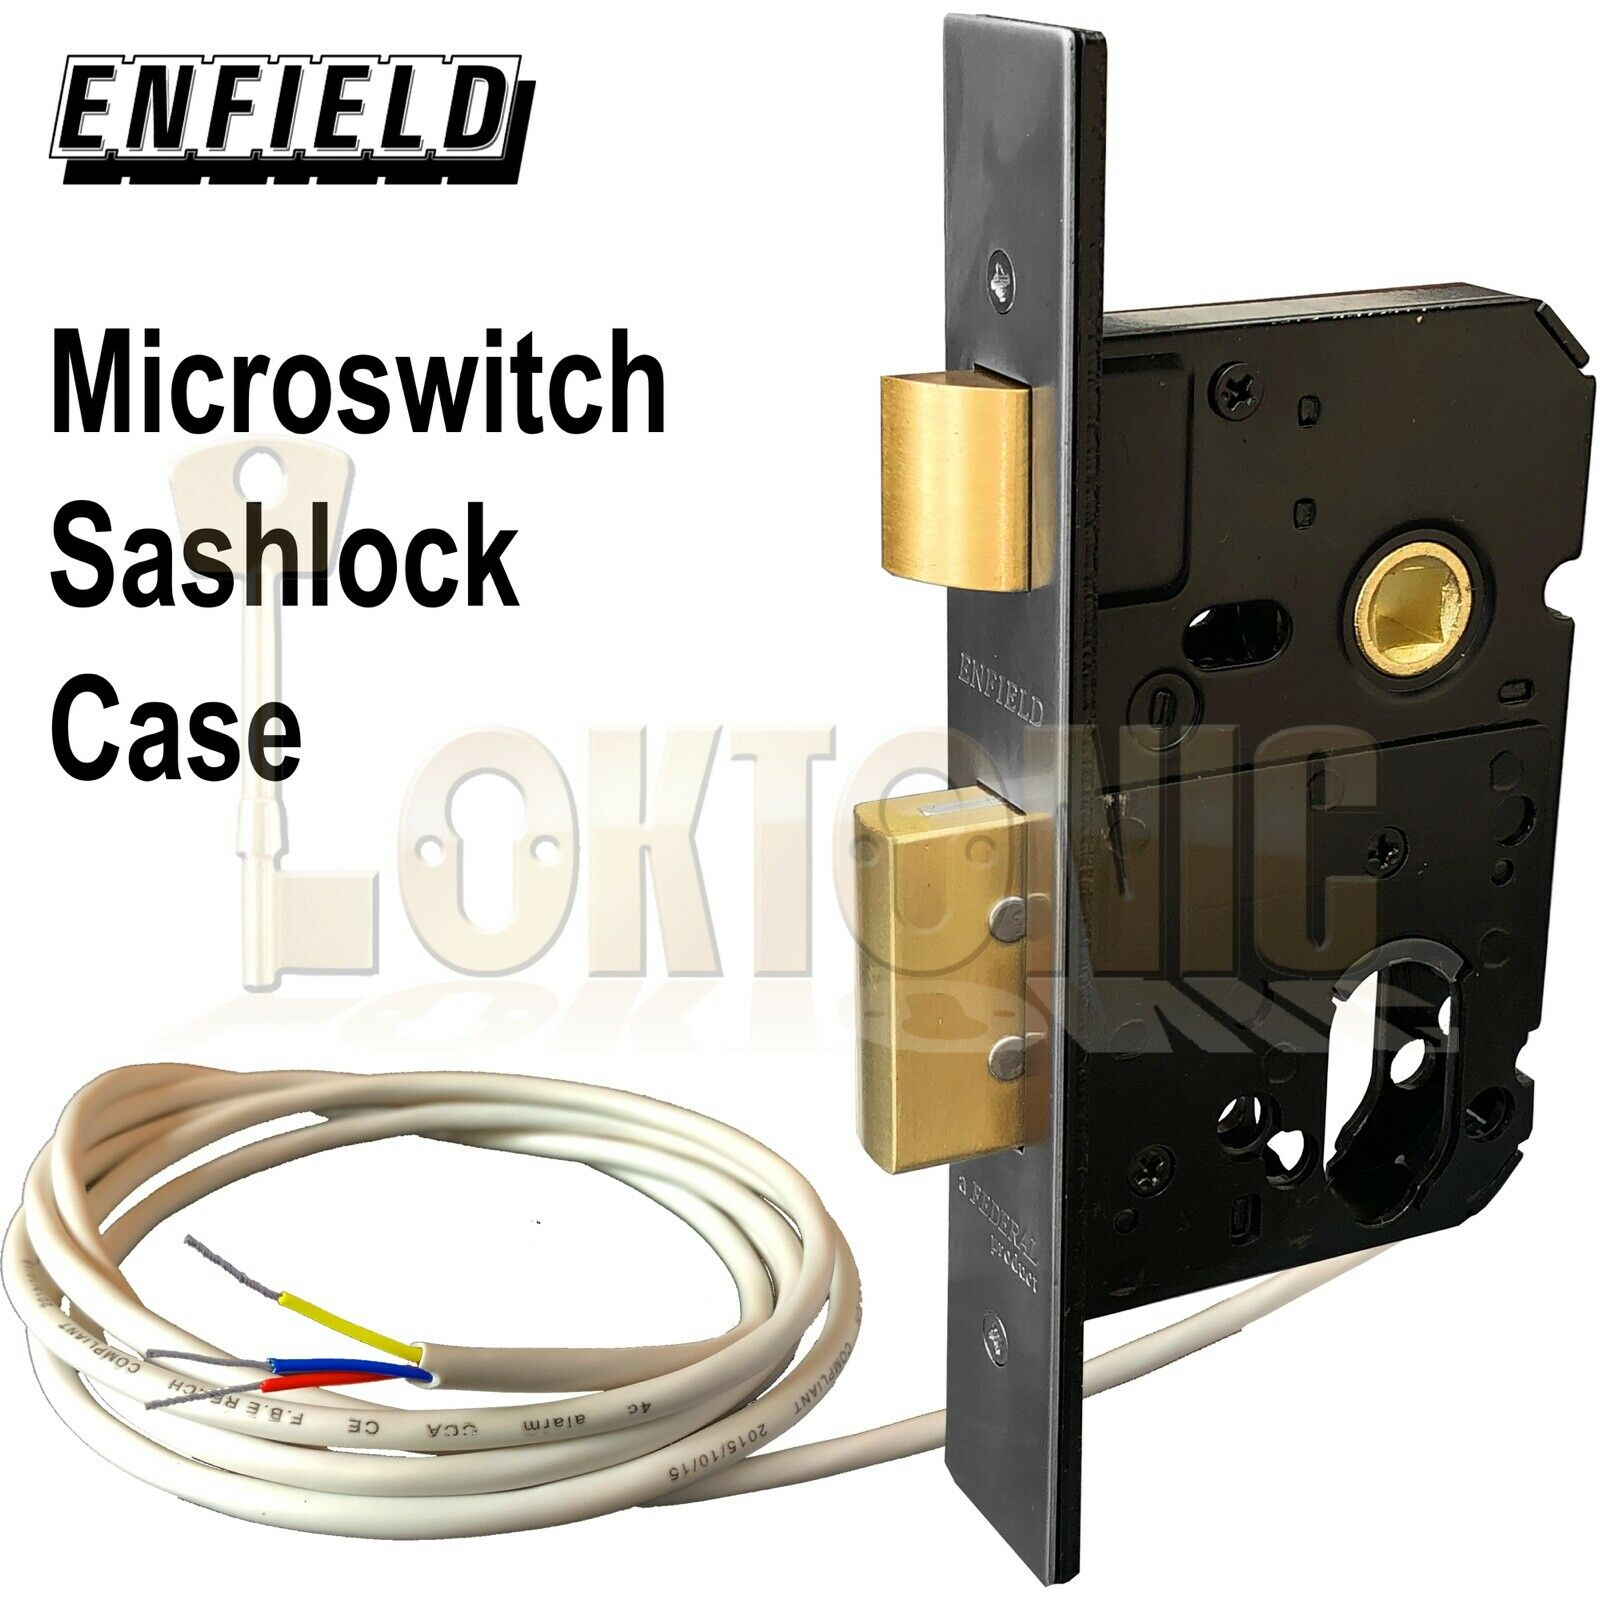 Enfield Mortice D735D Microswitched Dual Euro Oval Cylinder Sashlock Lock Case